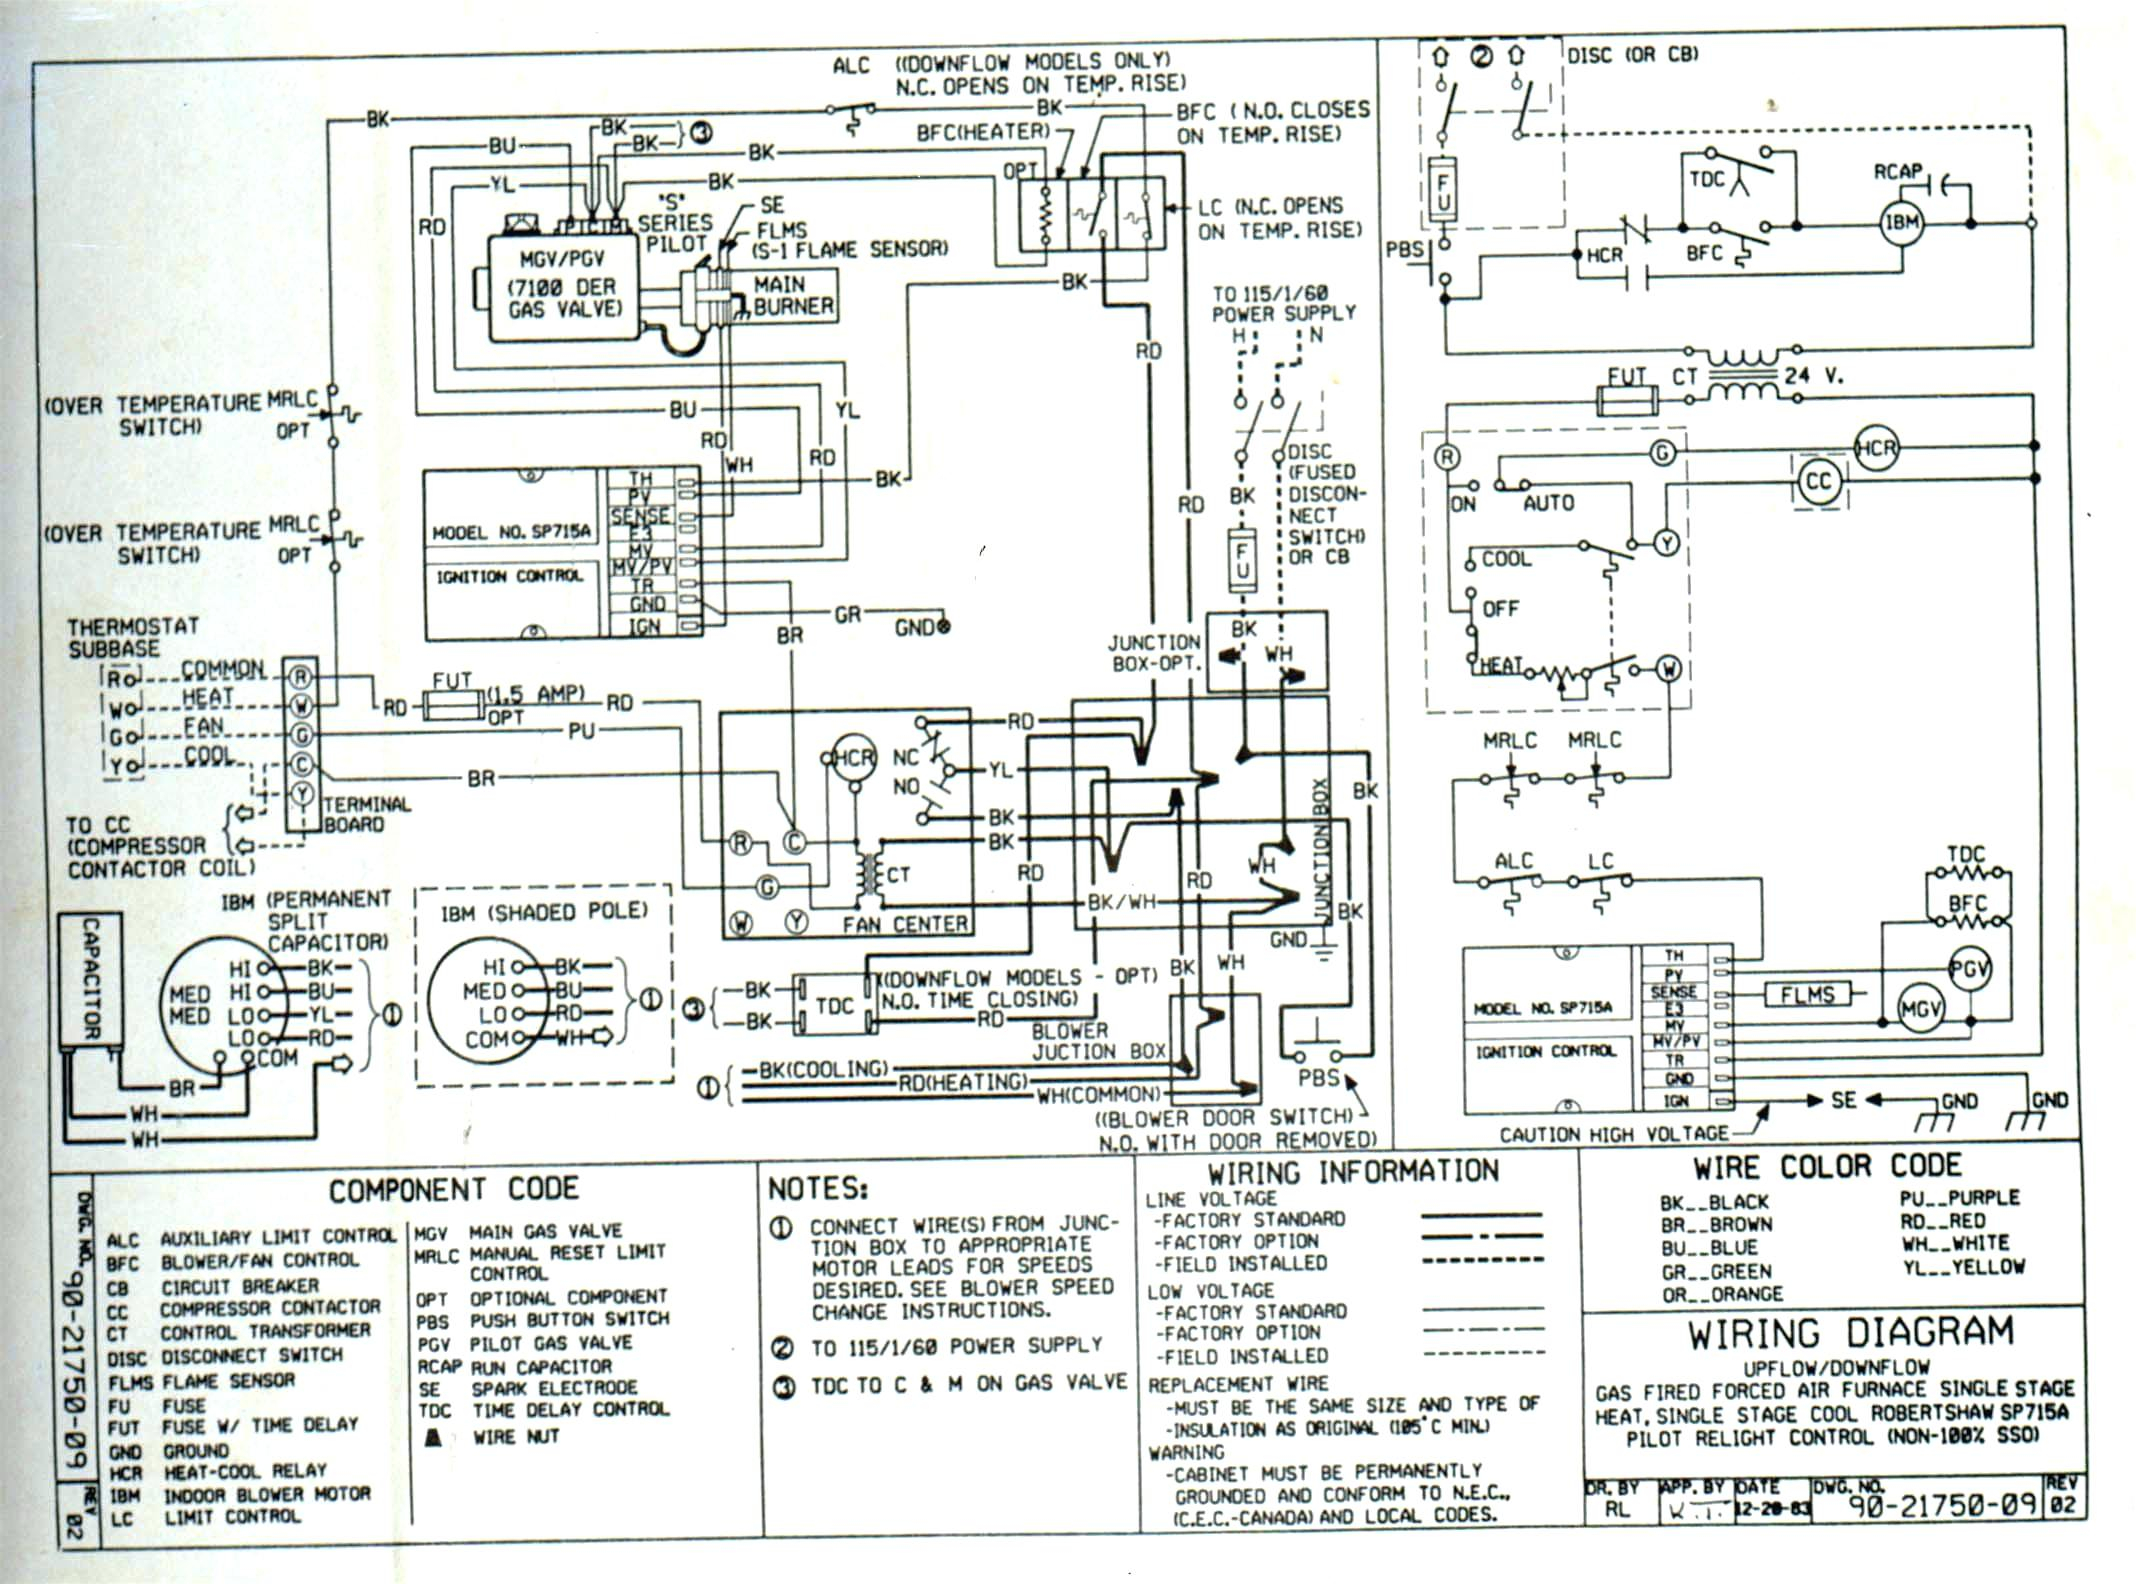 Wiring Diagram For Whirlpool Air Conditioner : Trane furnace wiring diagram sample collection